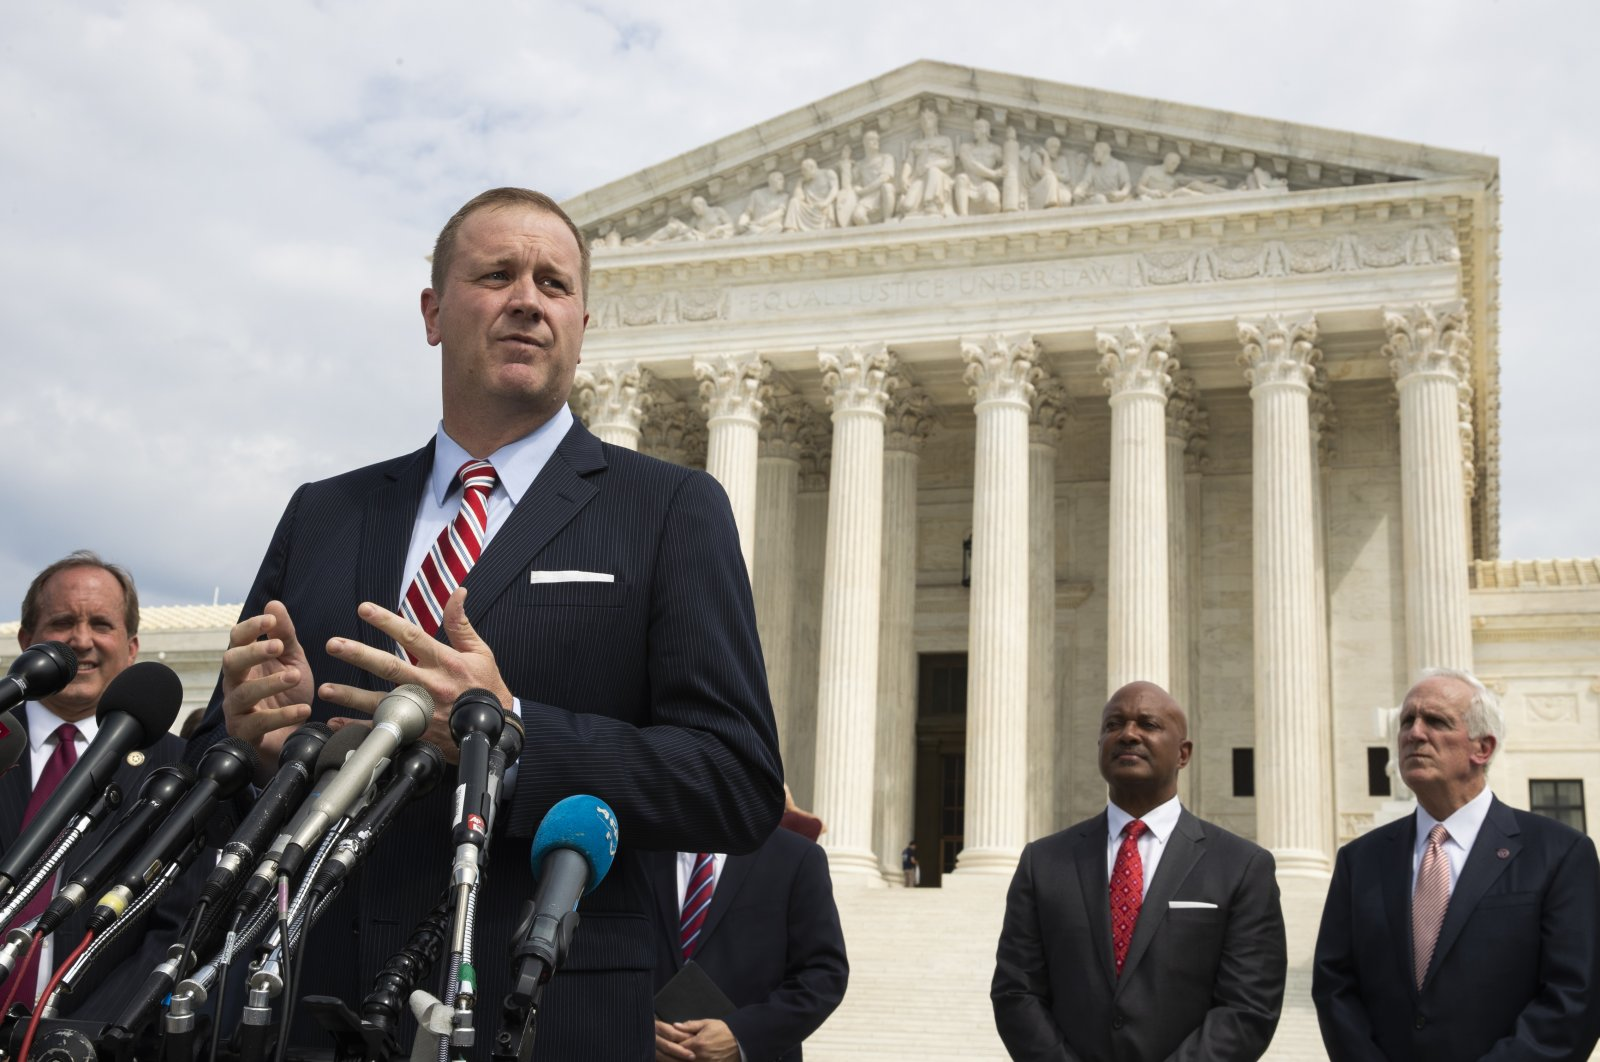 Missouri Attorney General Eric Schmitt speaks in front of the U.S. Supreme Court in Washington D.C., U.S., Sept. 9, 2019. (AP Photo)